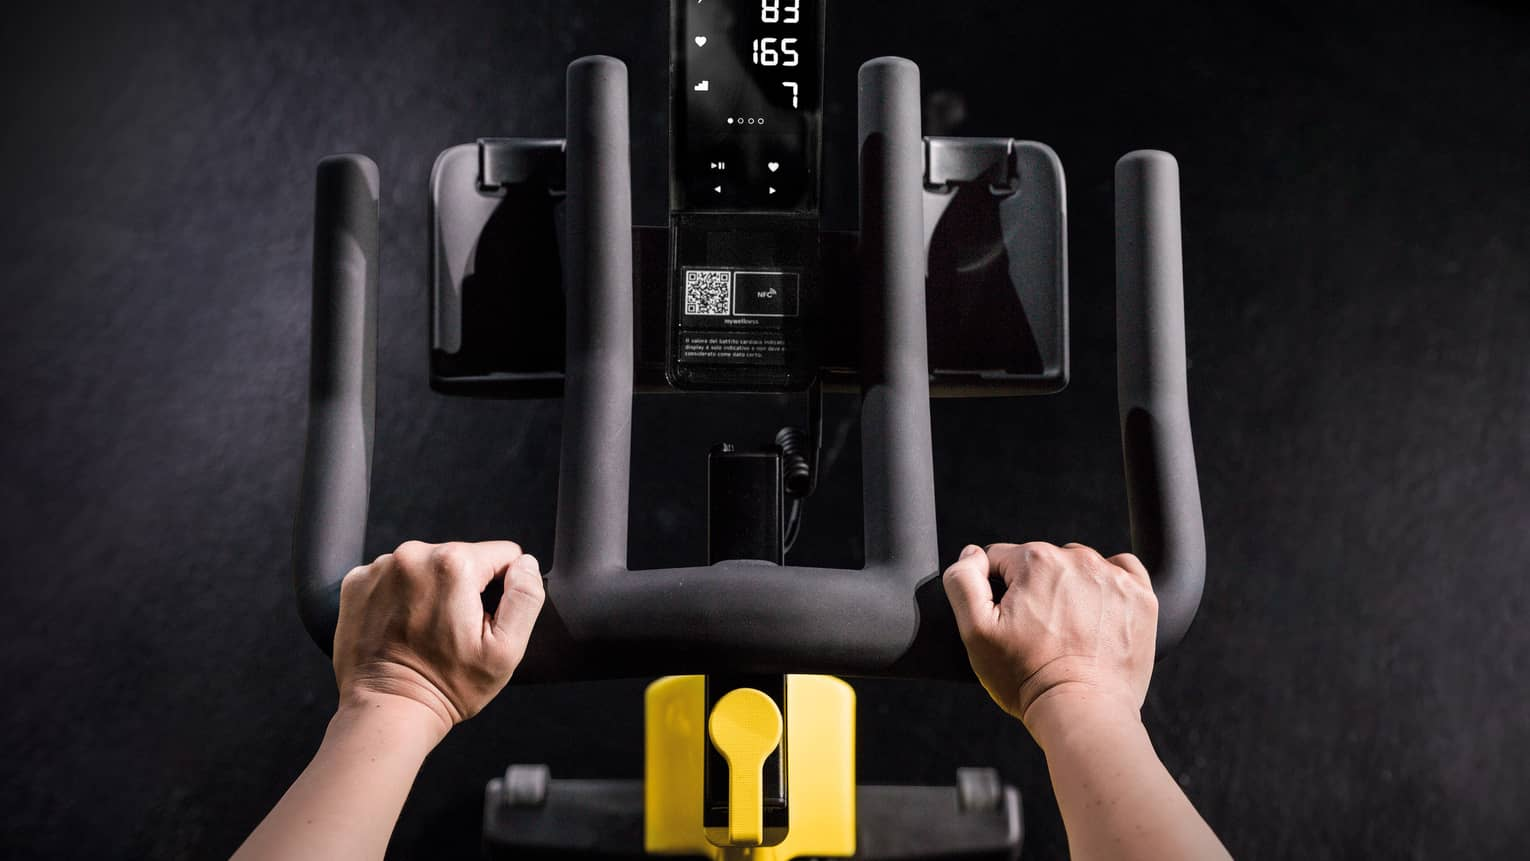 Close-up of hands holding black bars of cardio machine in dark room